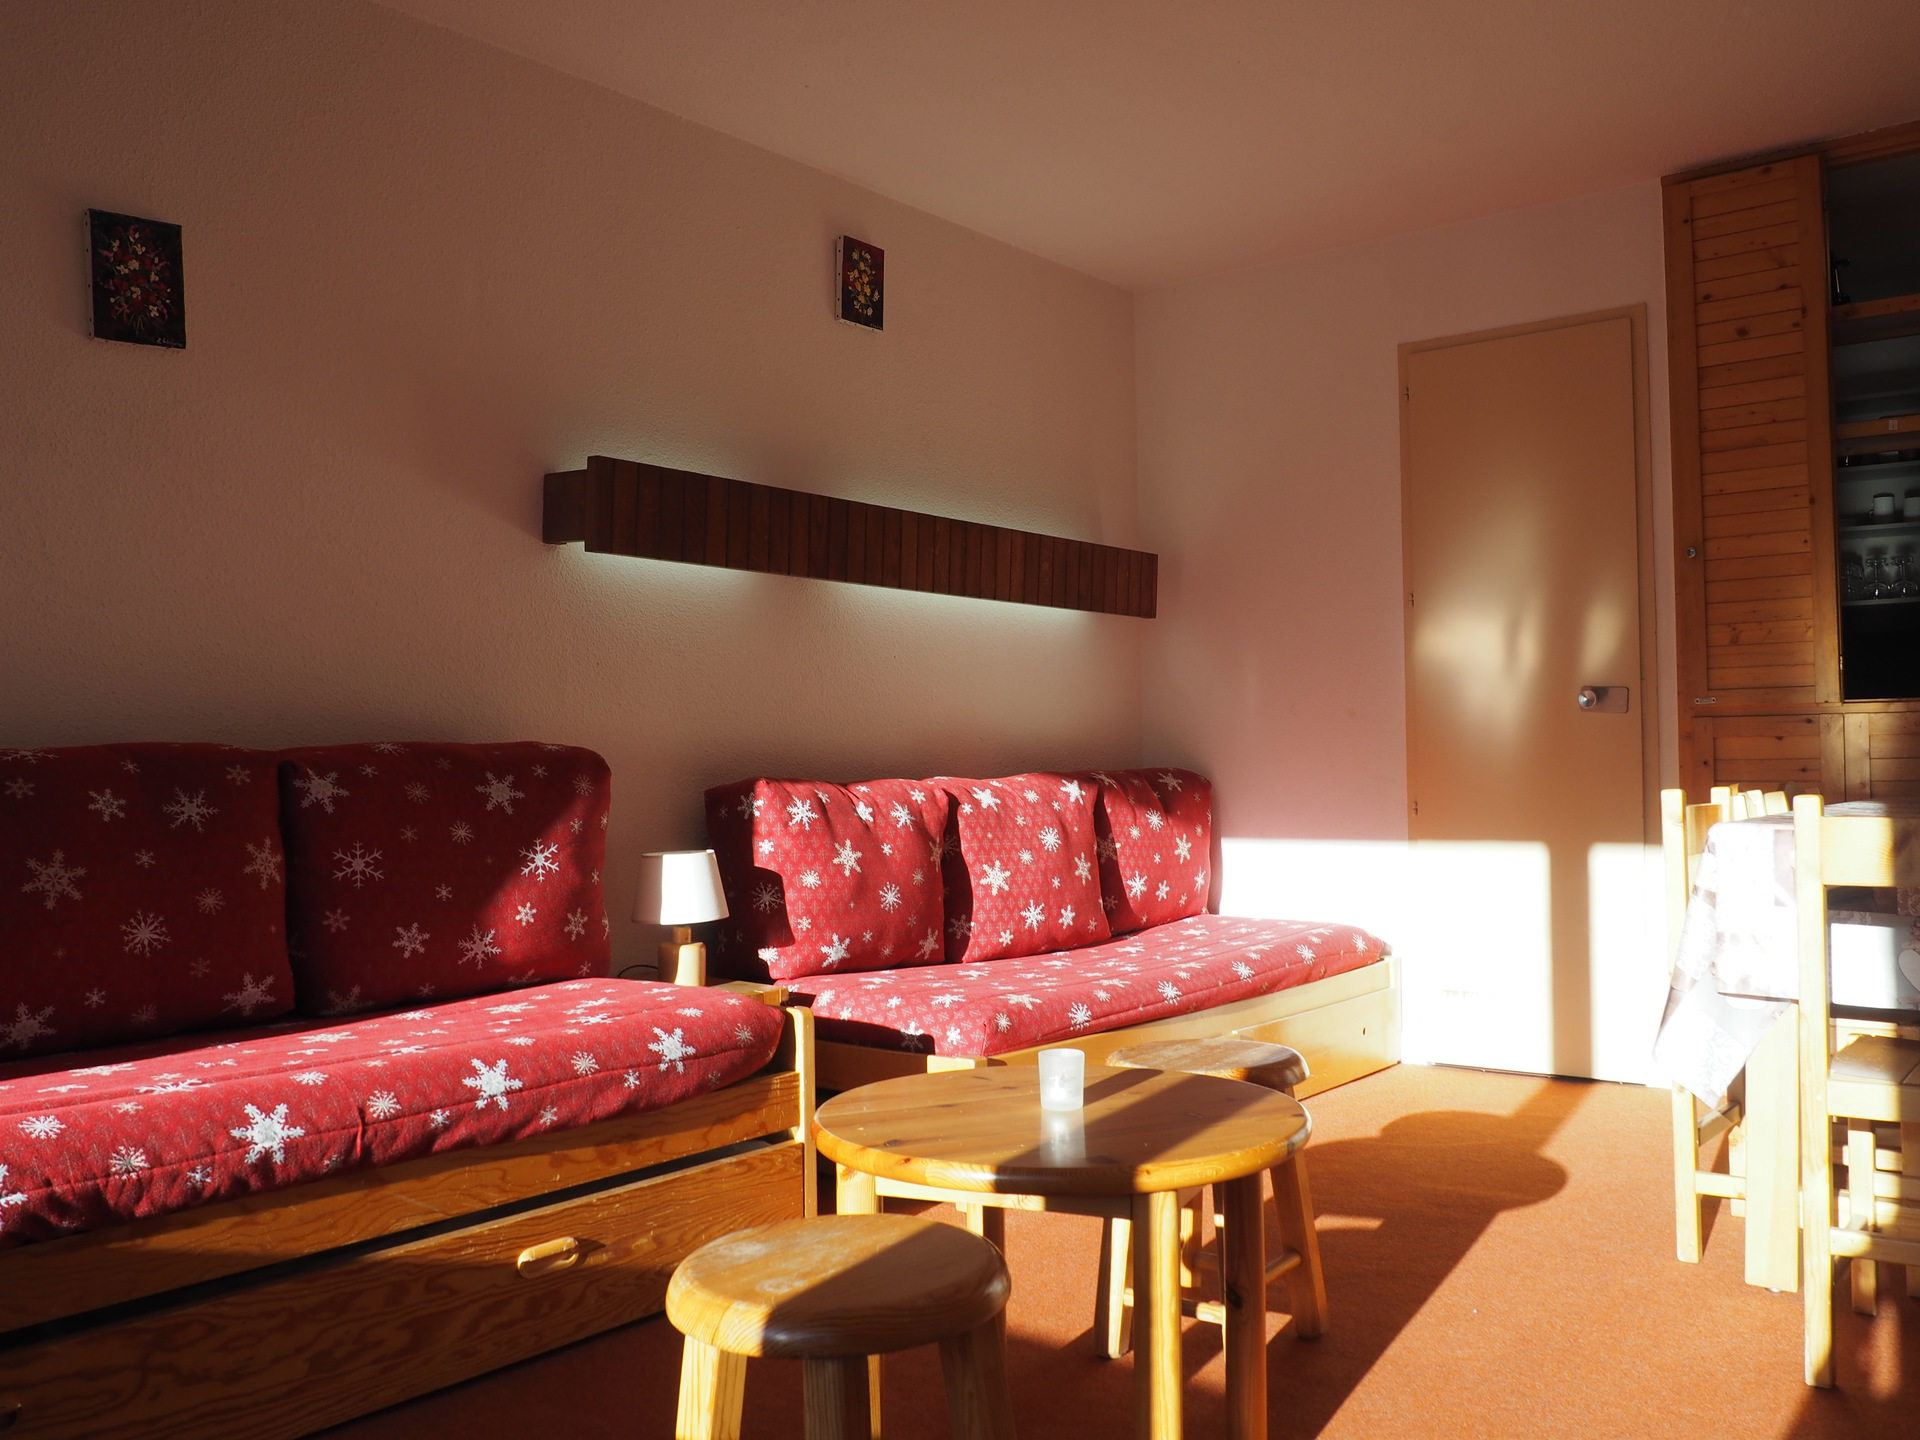 2 Rooms 5 Pers ski-in ski-out / LAC DU LOU 1212